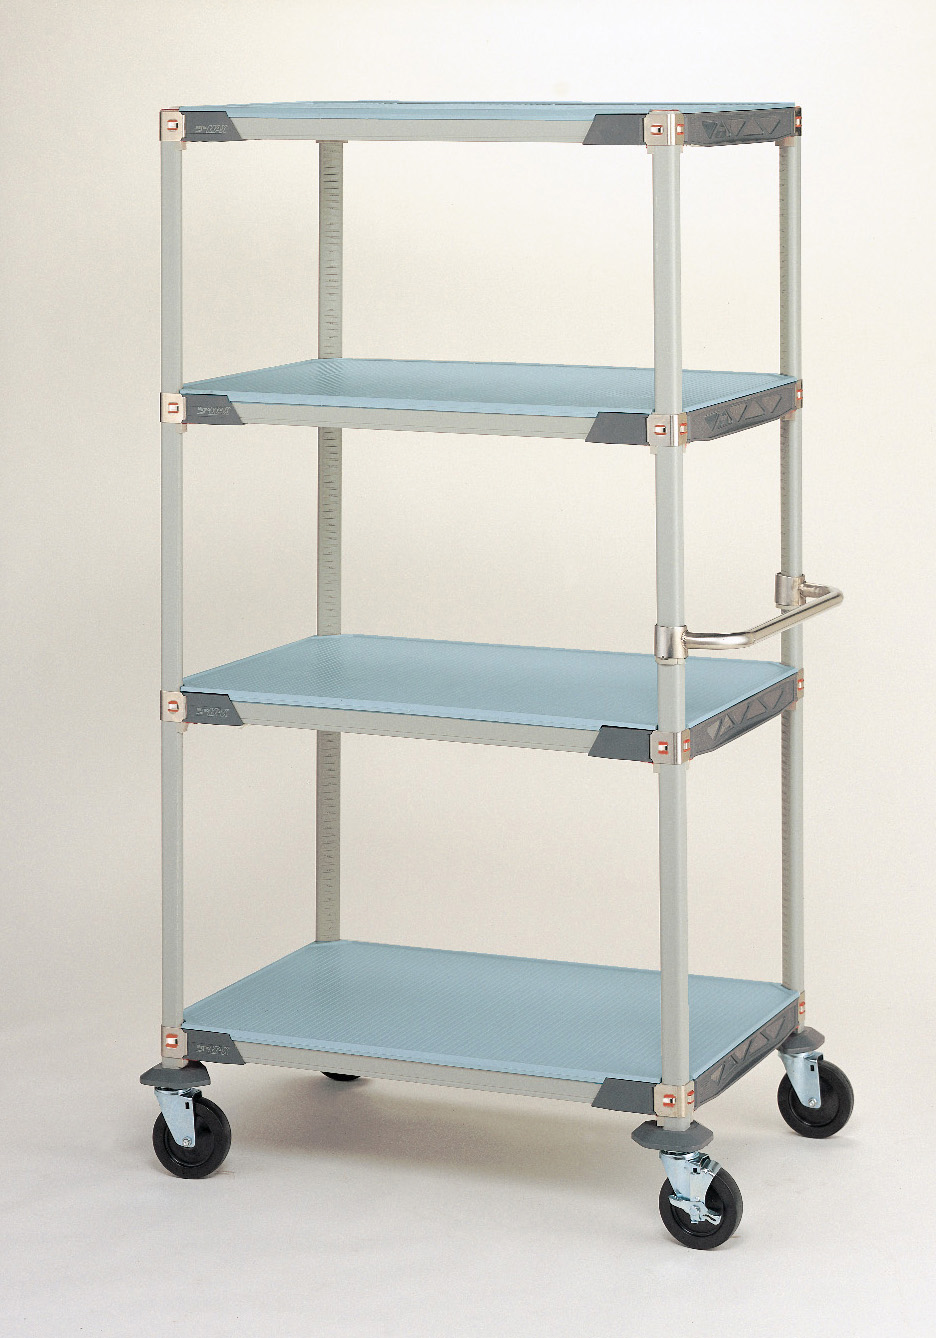 MetroMax i Solid Shelf Stem Caster Carts